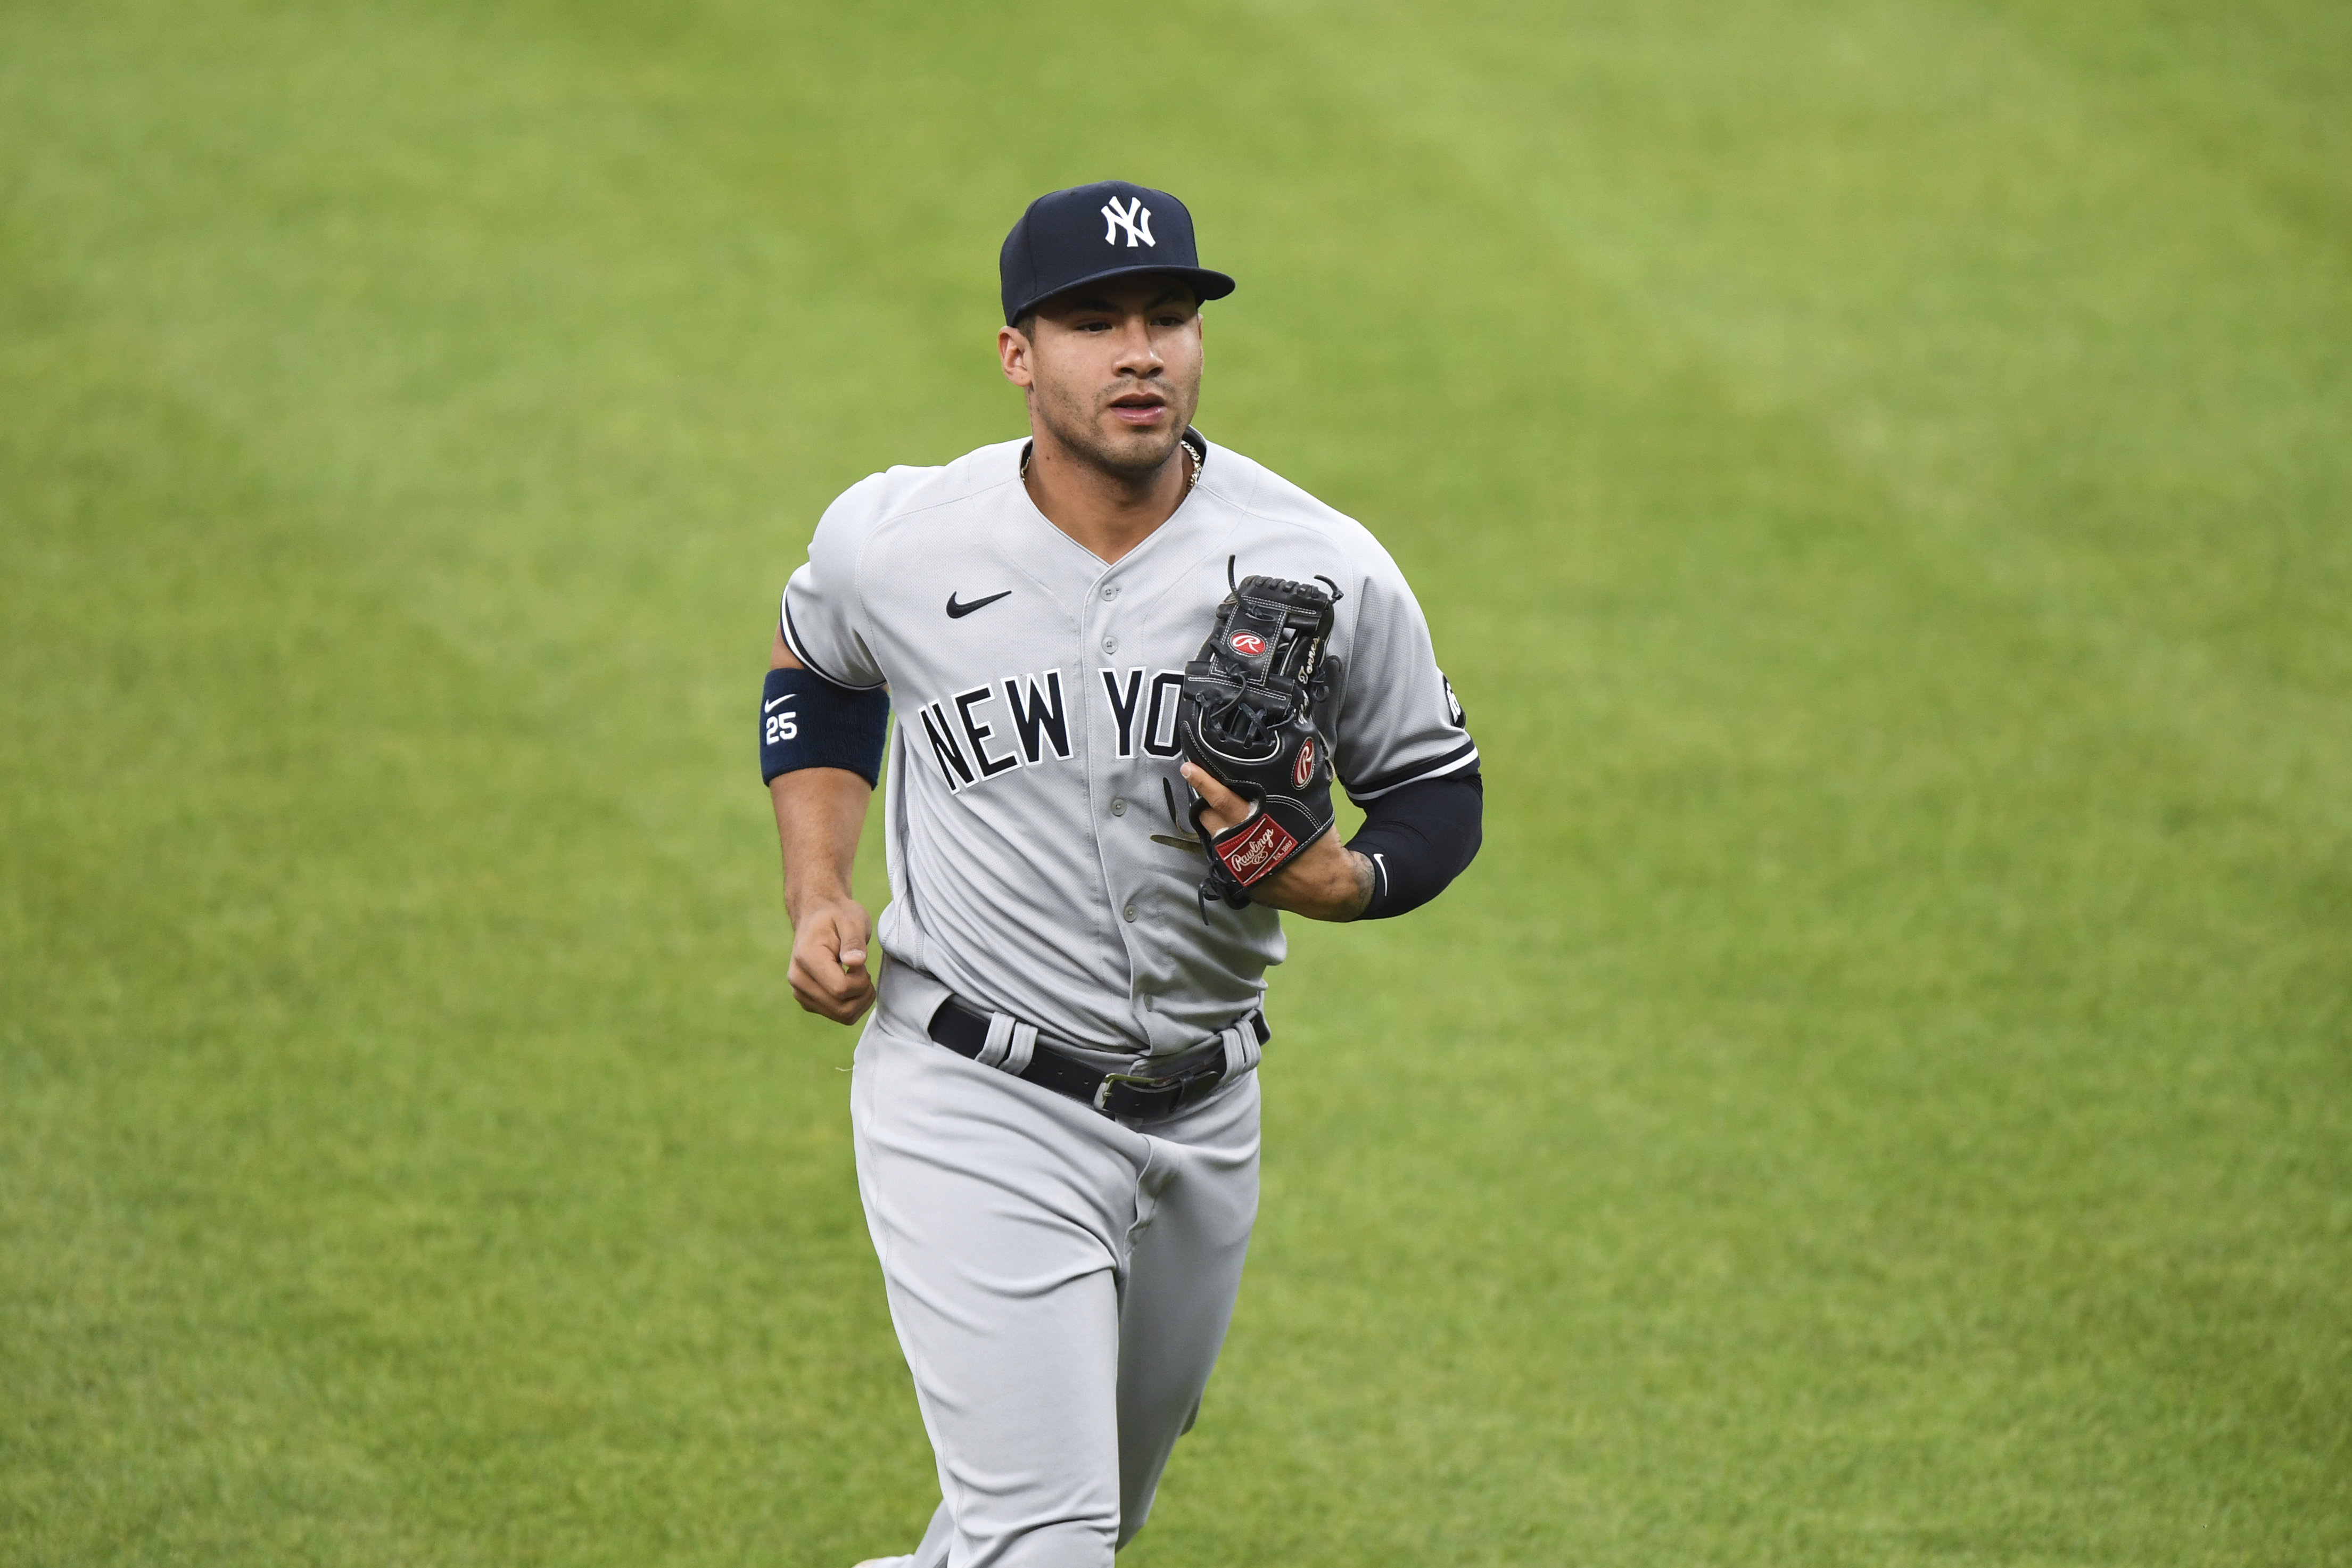 Gleyber Torres Becomes 8th Member of Yankees to Test Positive for COVID-19  | Bleacher Report | Latest News, Videos and Highlights